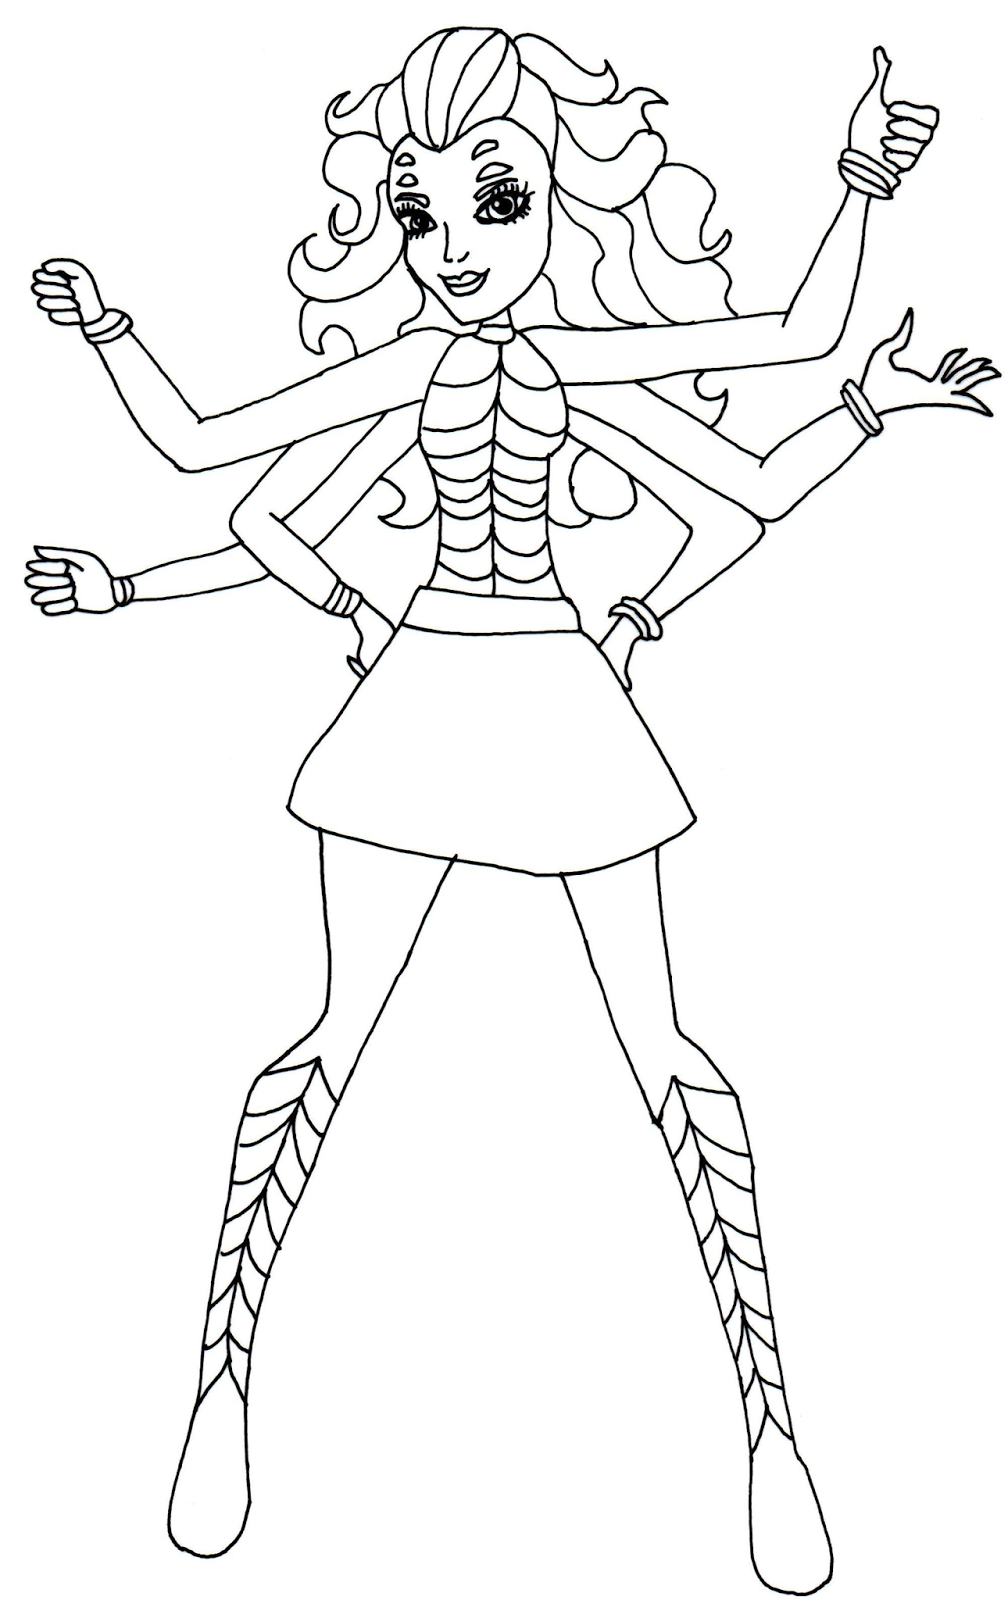 Free Printable Monster High Coloring Pages: Wydowna Spider